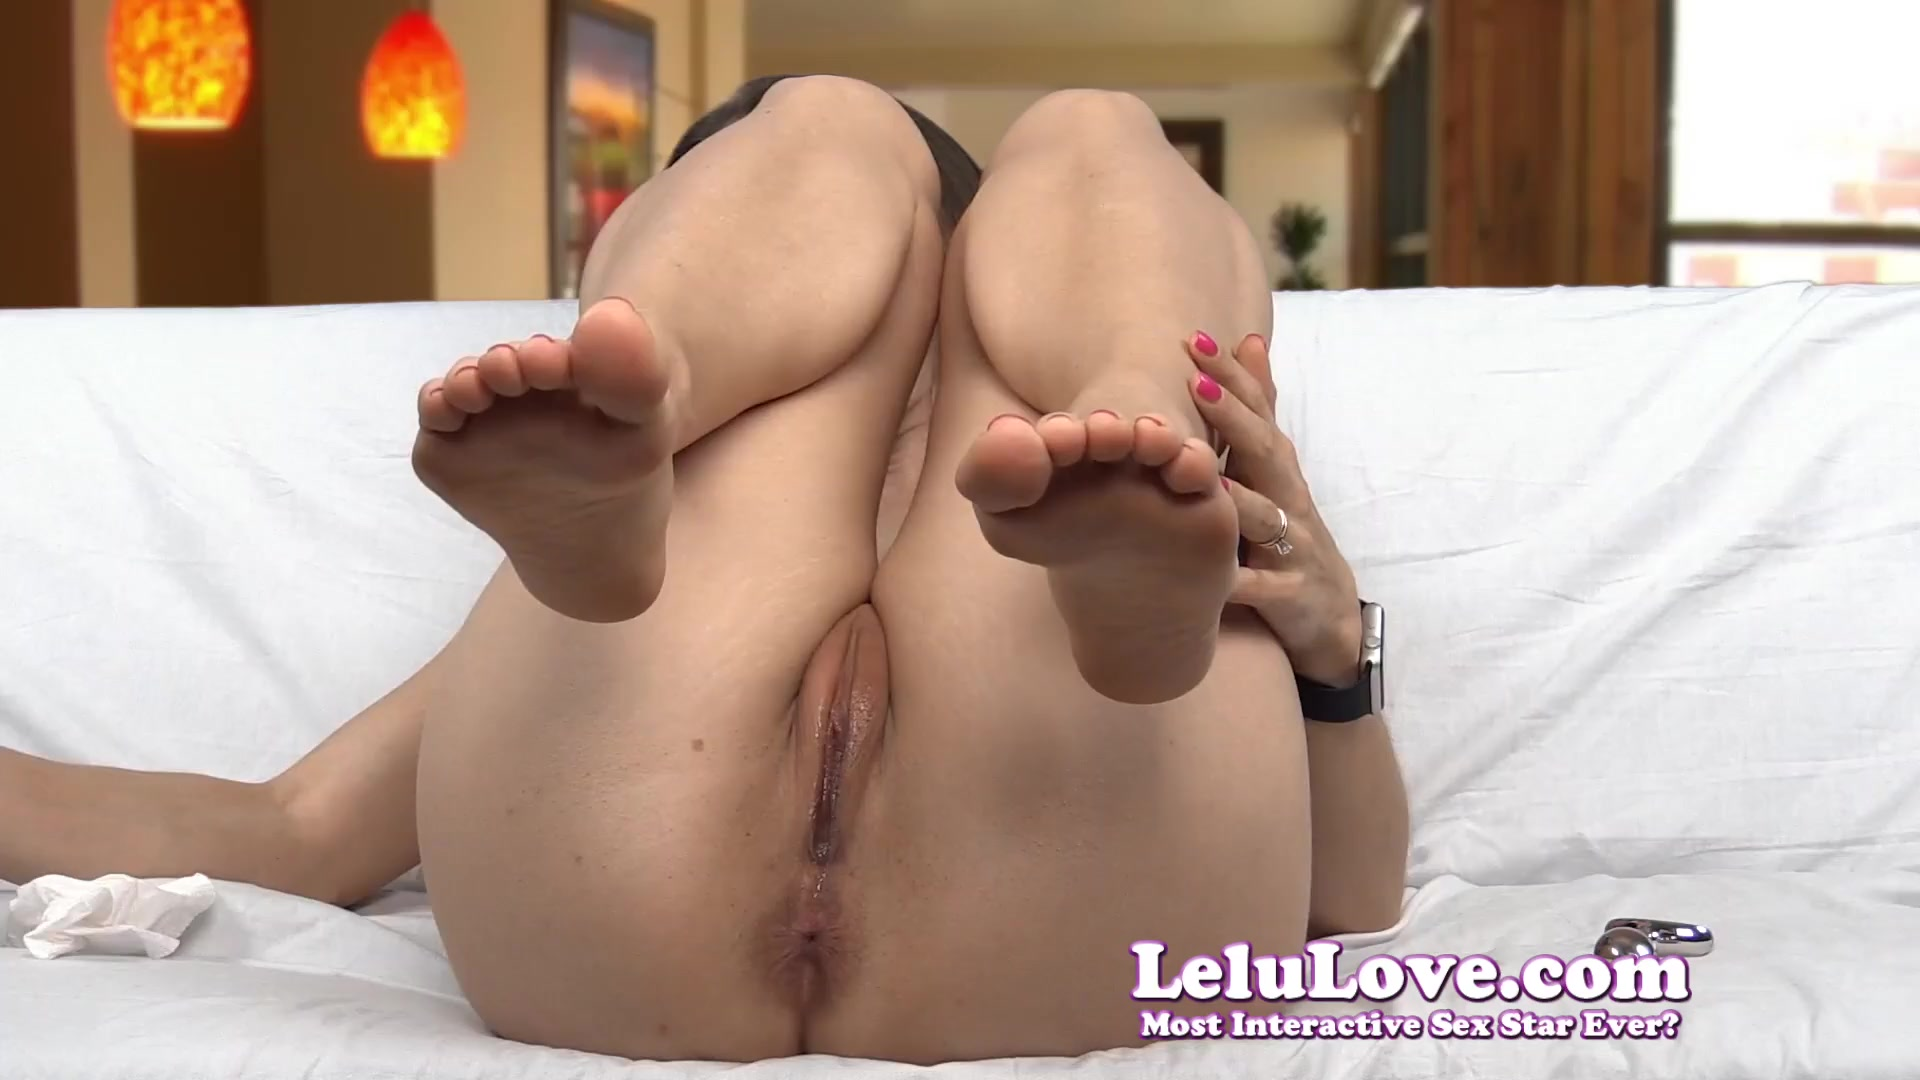 Pictures of girl pussy